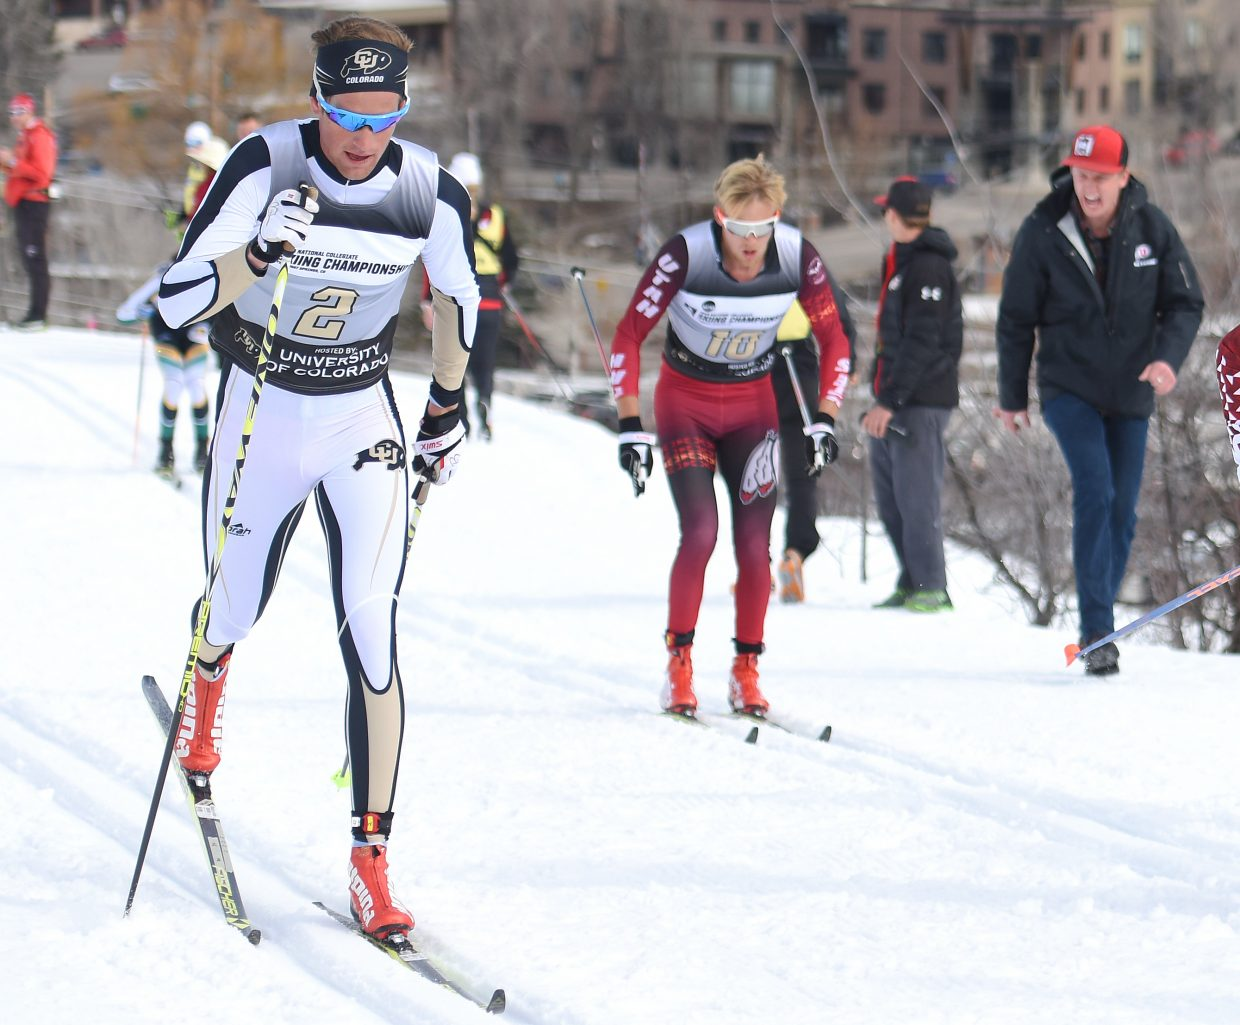 Mads Stroem glides down the trail Saturday during the men's 20K classic Nordic skiing race at the NCAA Skiing Championships in Steamboat Springs. He went on to win the event, his second victory of the weekend.